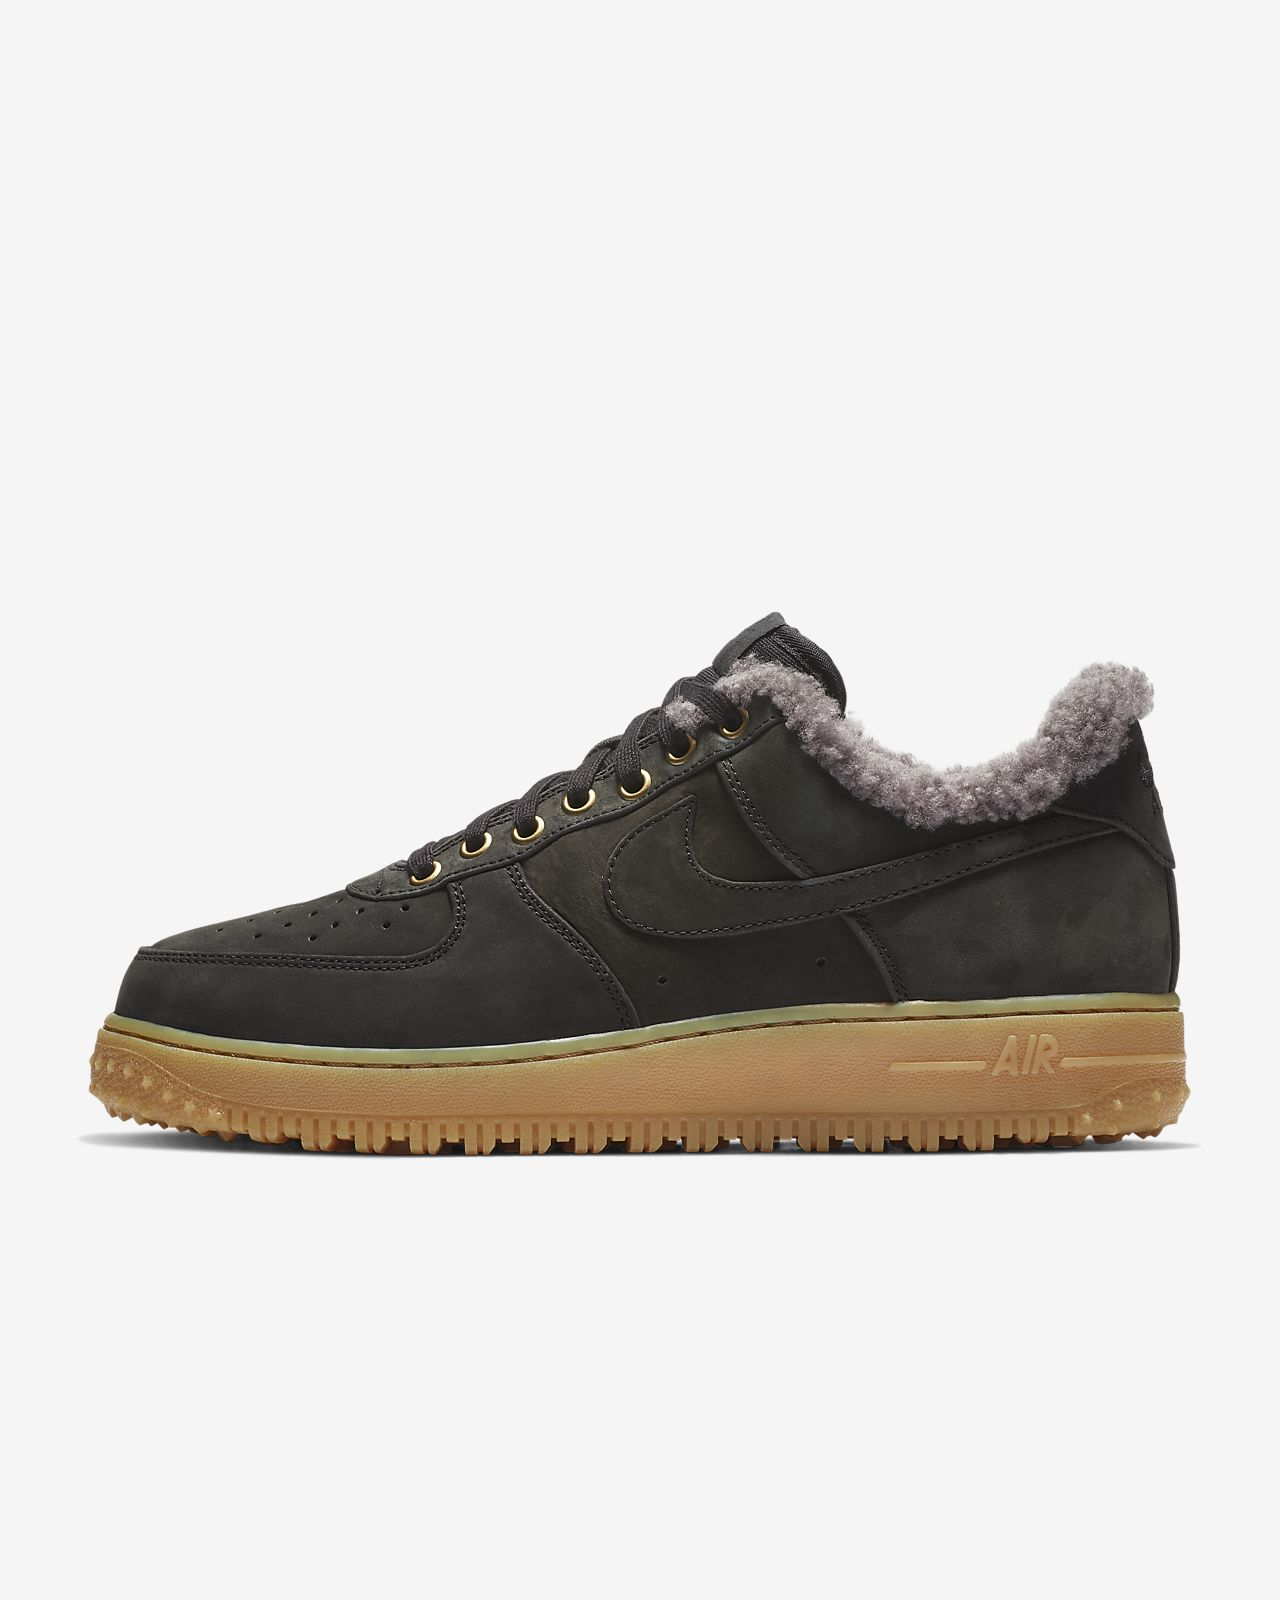 Winter Homme Ch 1 Premium Pour Chaussure Air Nike Force w4T4x